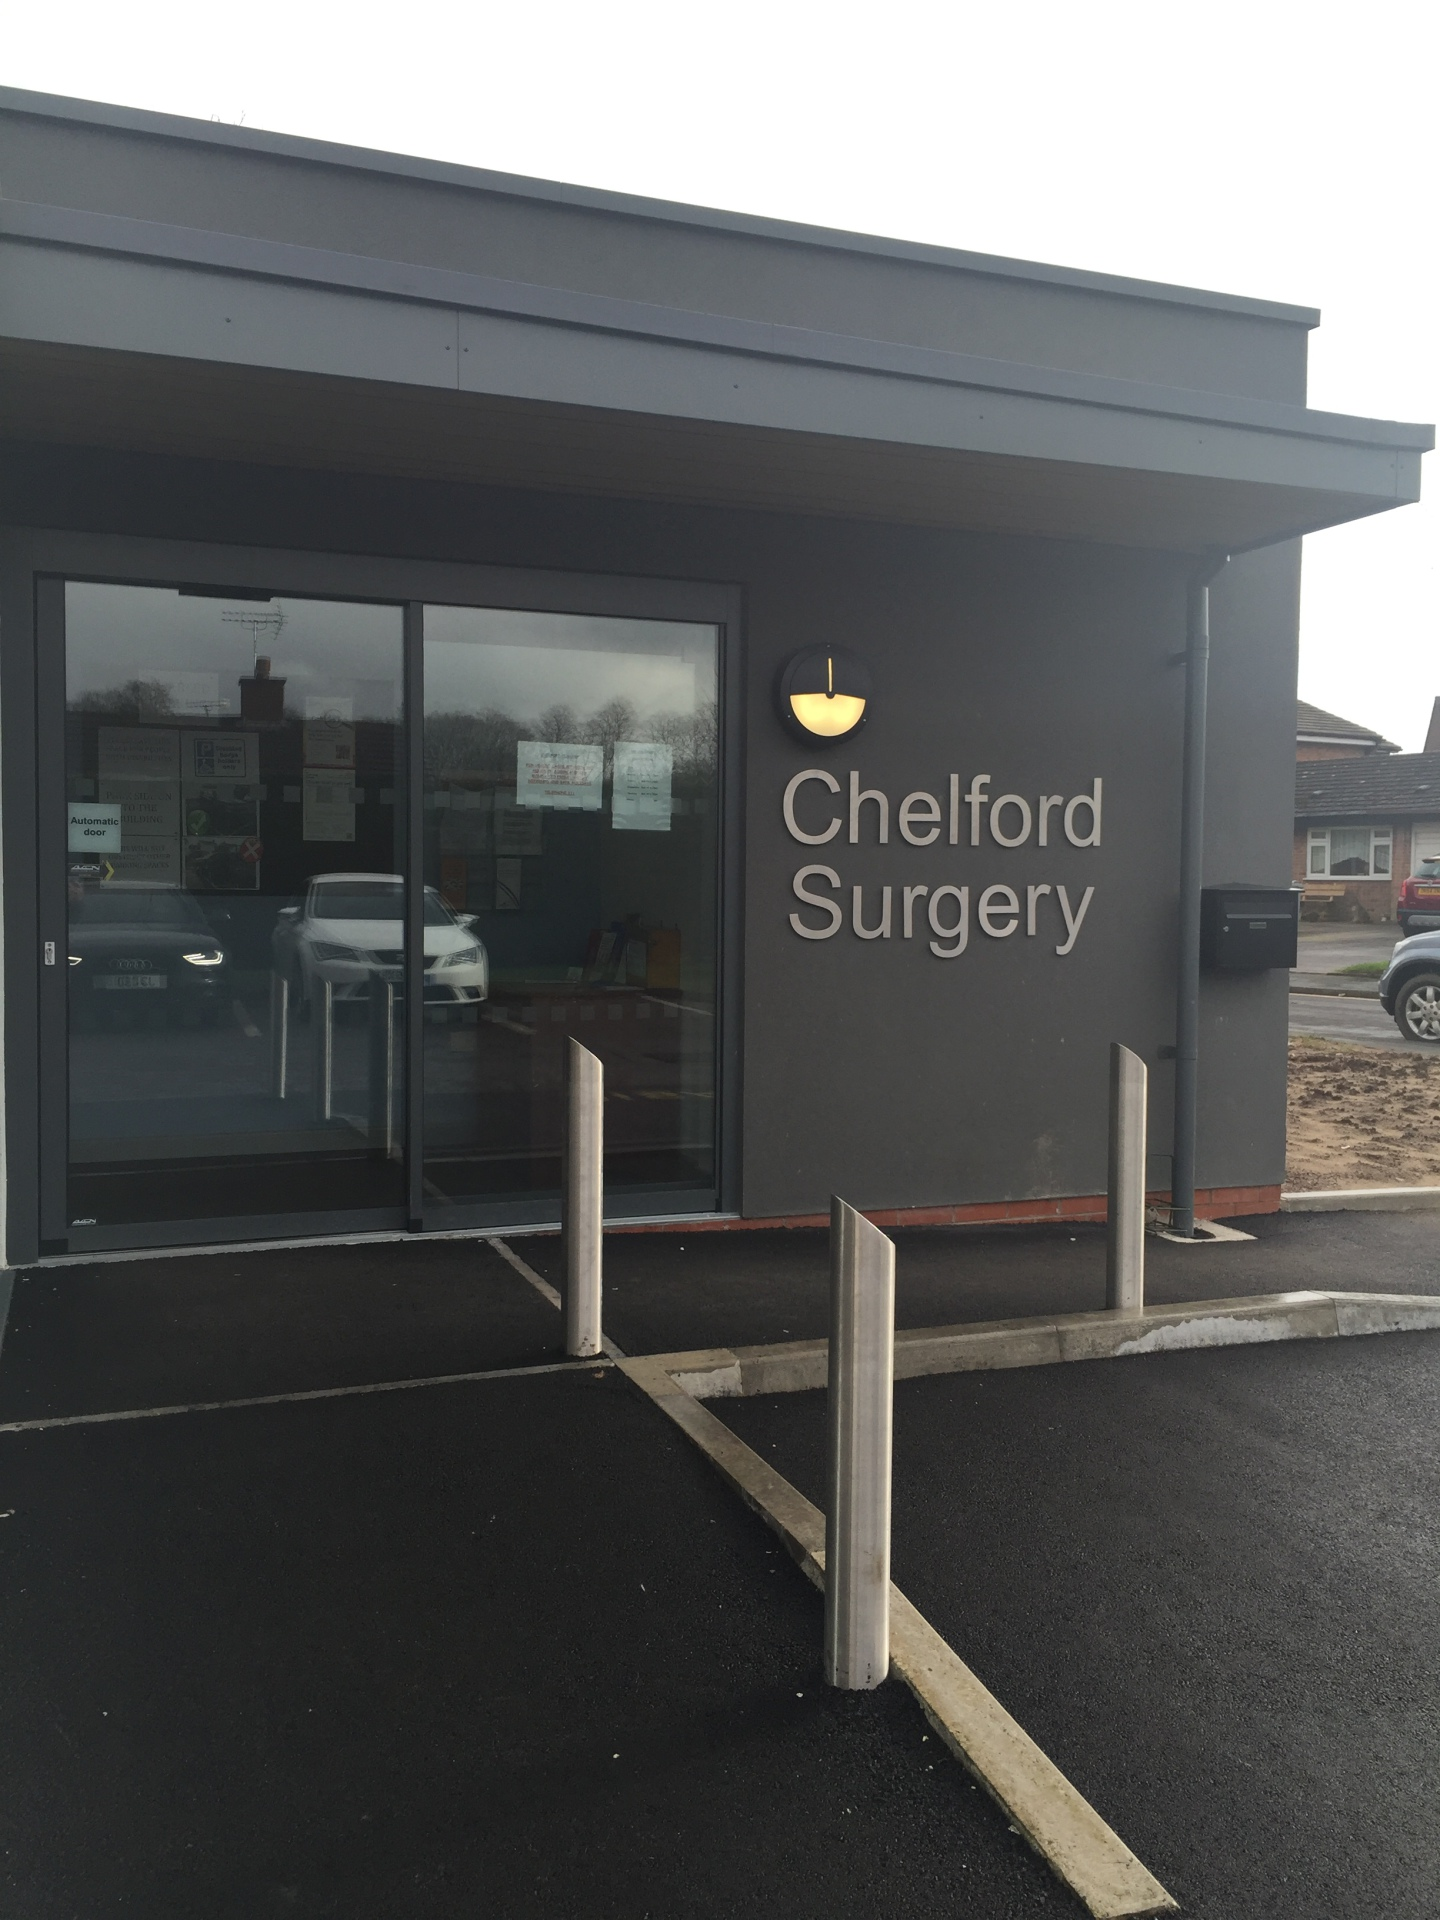 Chelford Surgery - Macclesfield